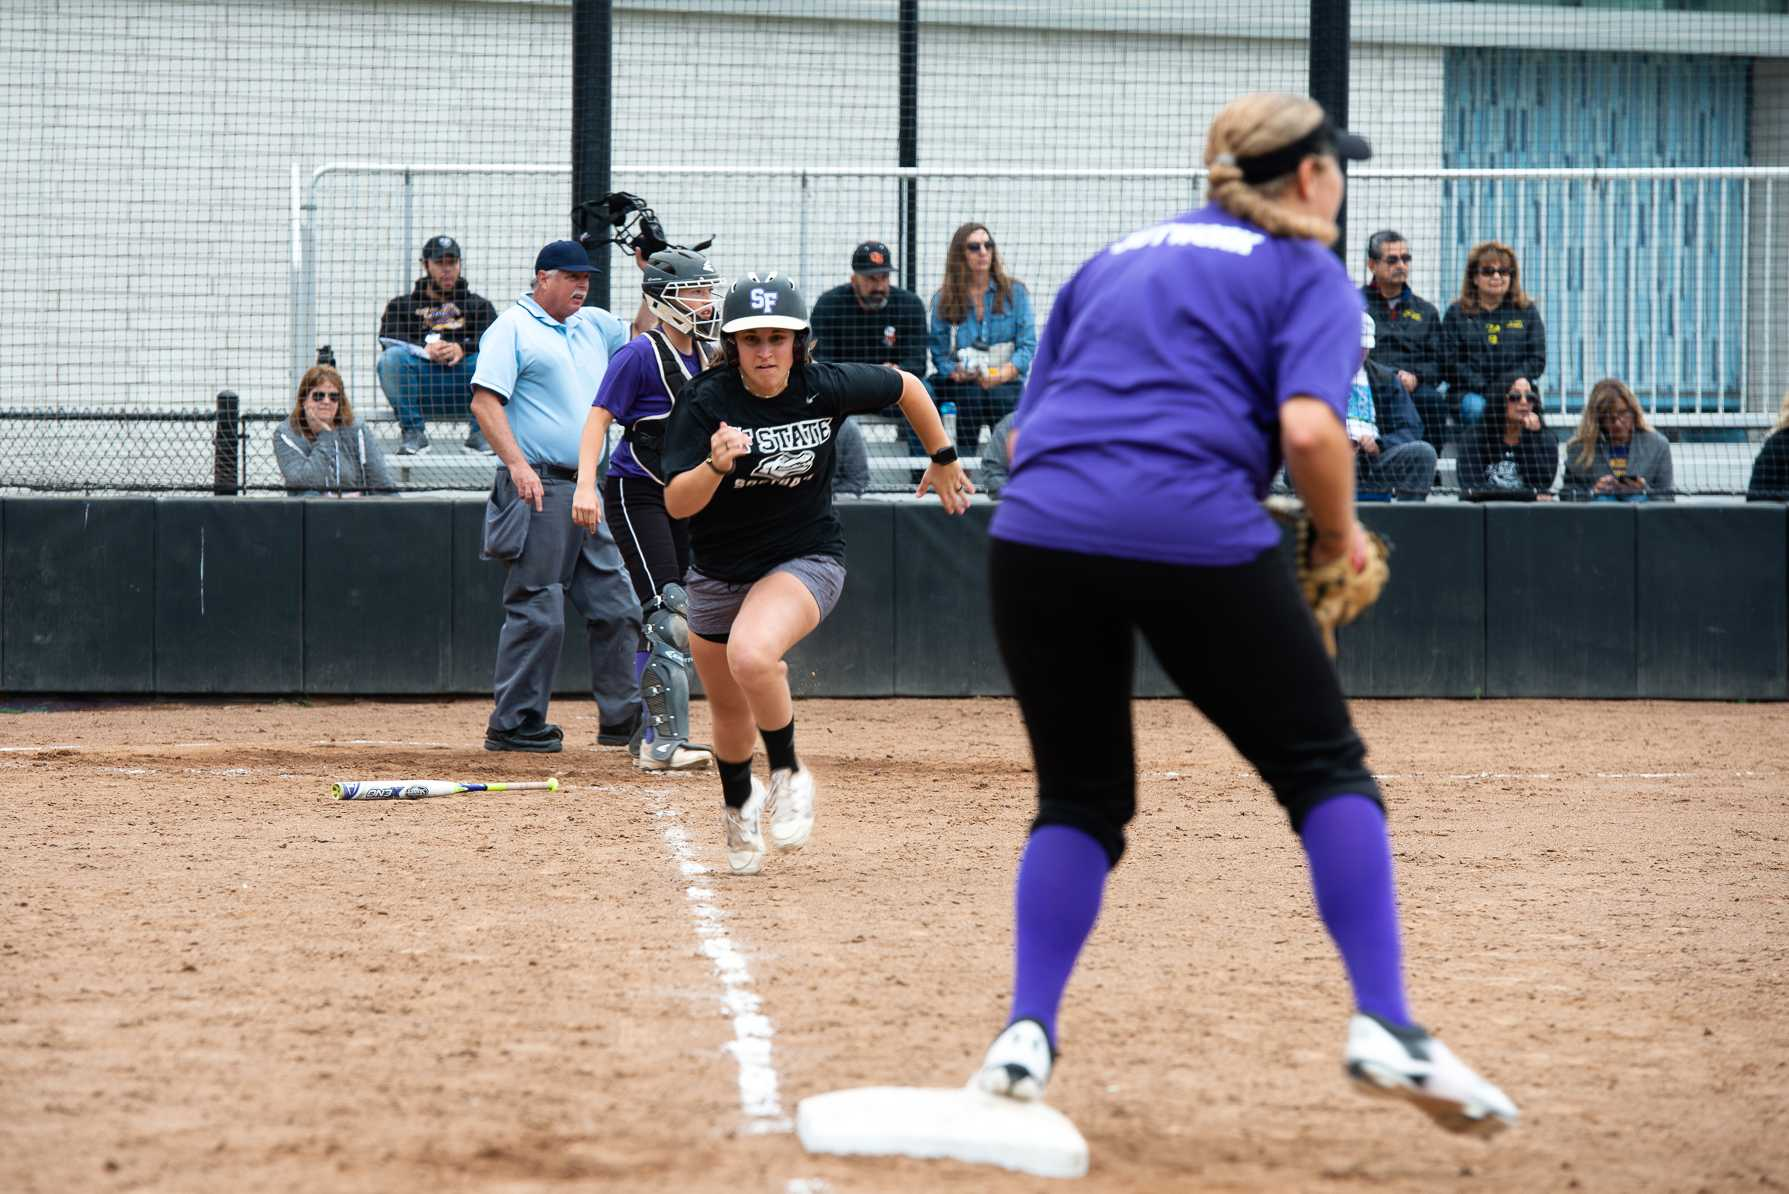 SF State alumna Jennifer Lewis runs to first base during the annual softball alumni game at the Softball Field on Saturday, Oct. 13. (David Rodriguez/Golden Gate Xpress)